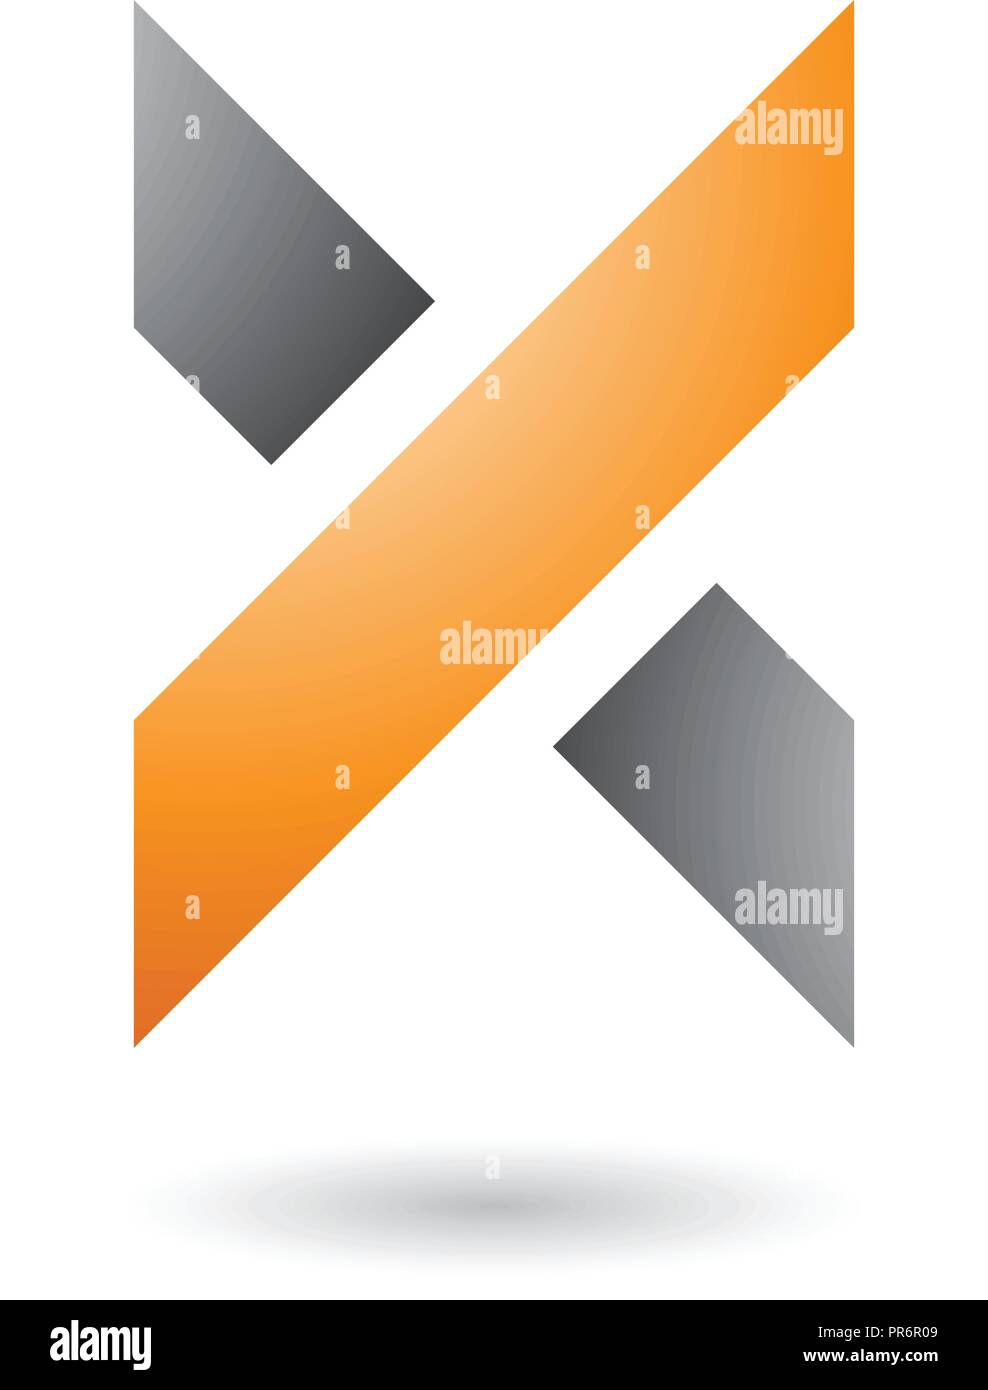 Vector Illustration of Orange and Grey Thick Shaded Letter X isolated on a White Background - Stock Image